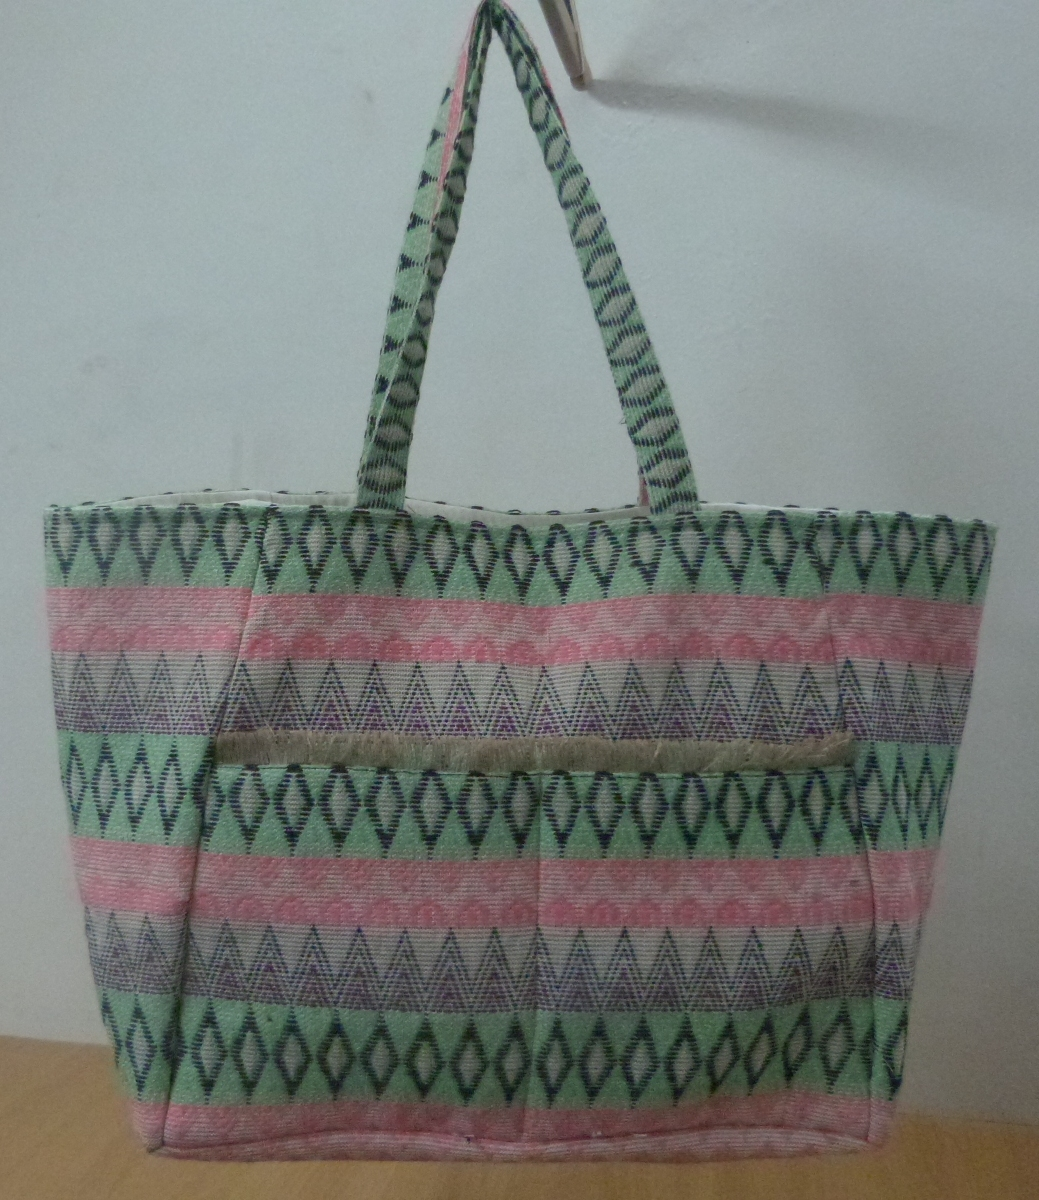 COTTON BAG EMBROIDERY